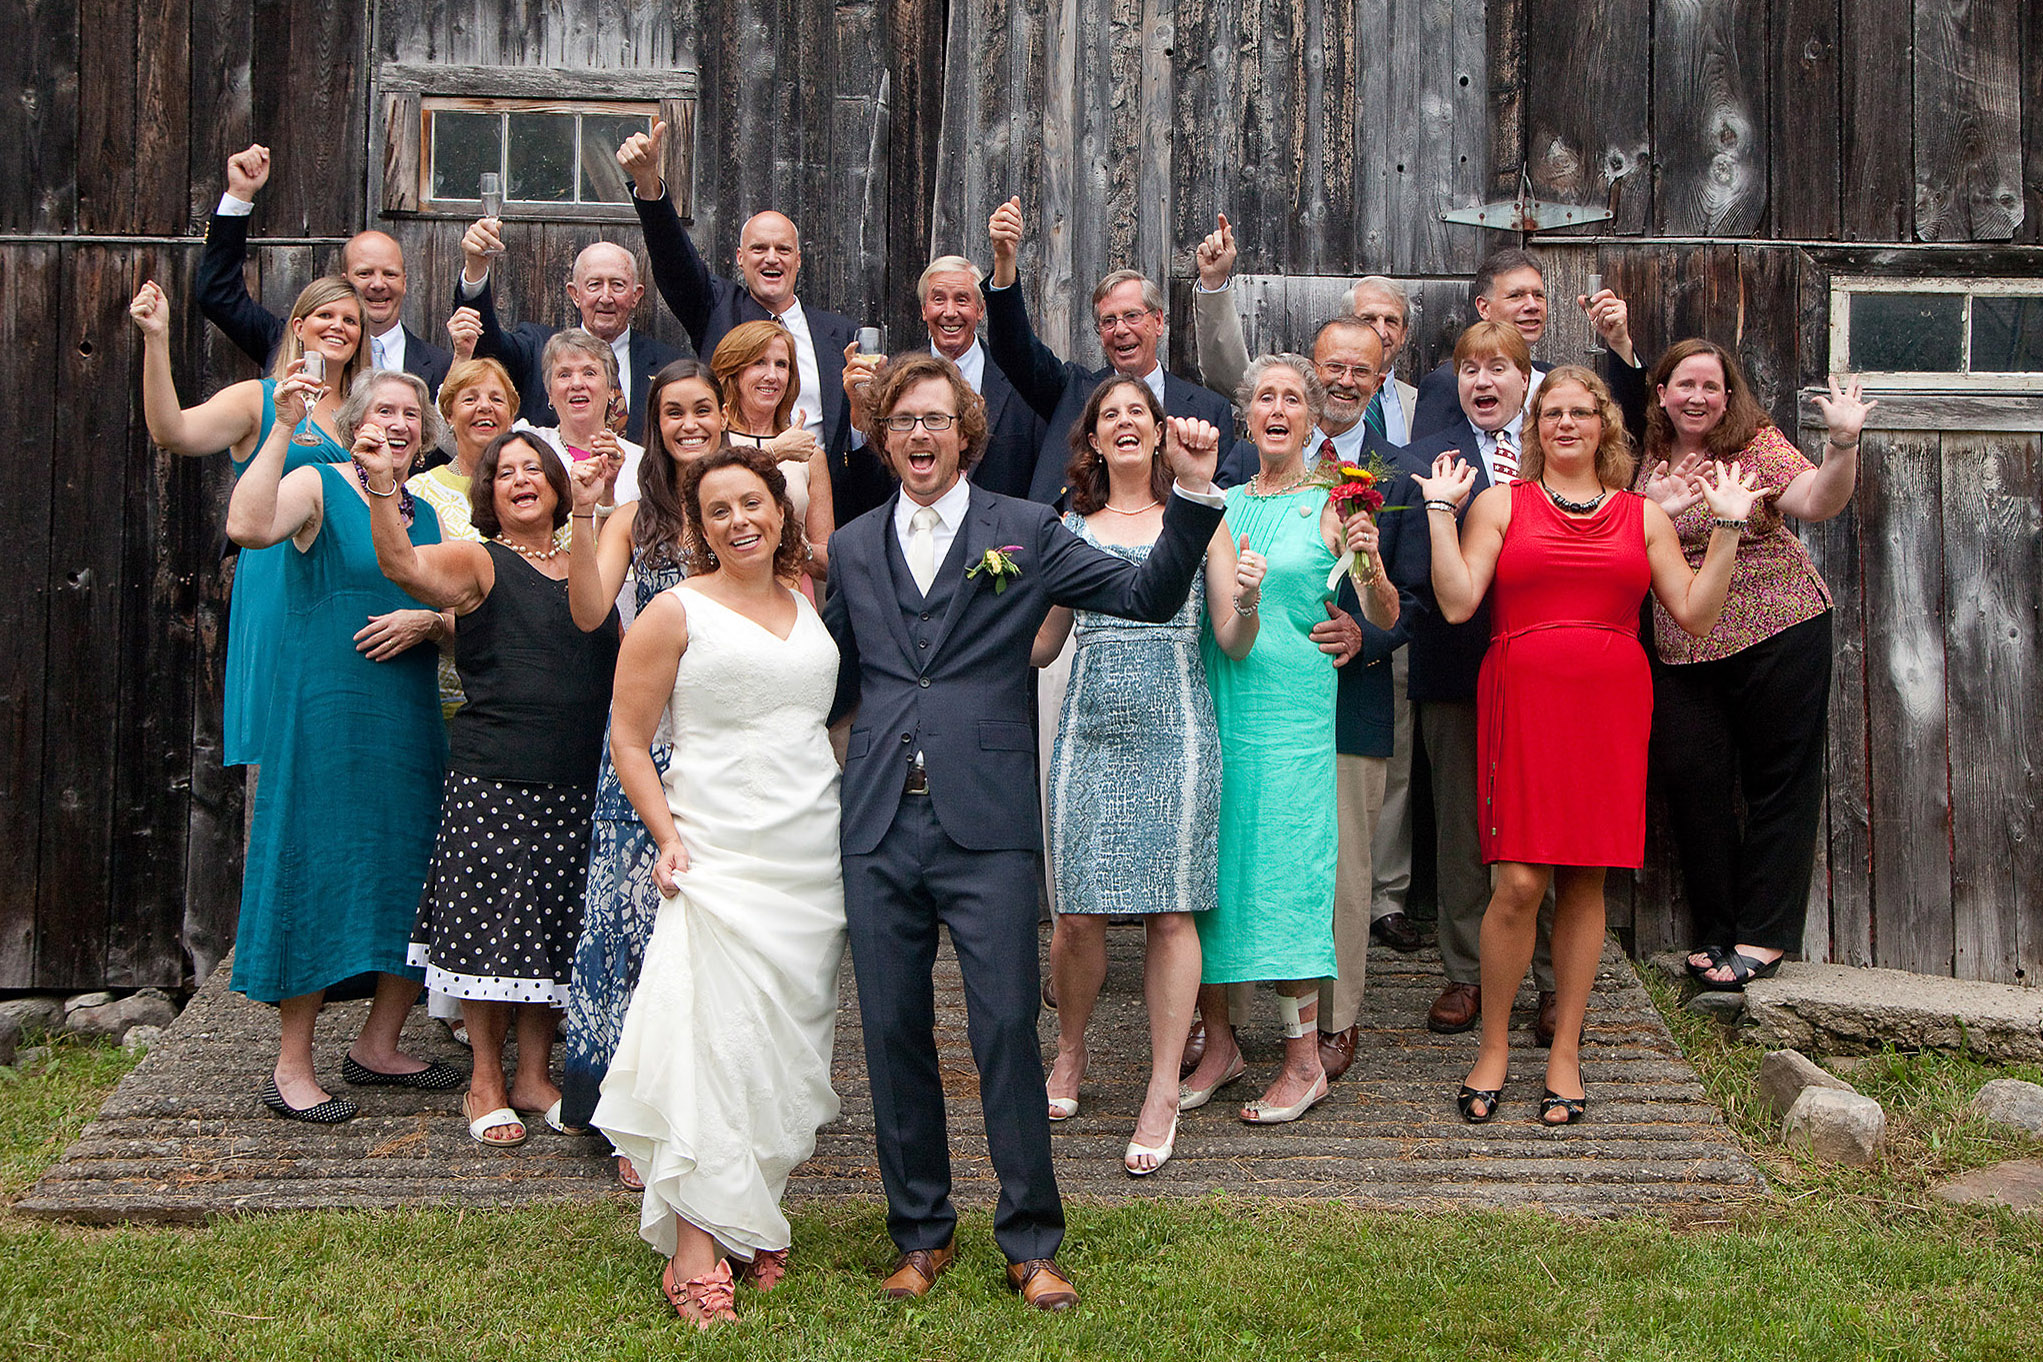 wedding party celebrate at a farm.jpg